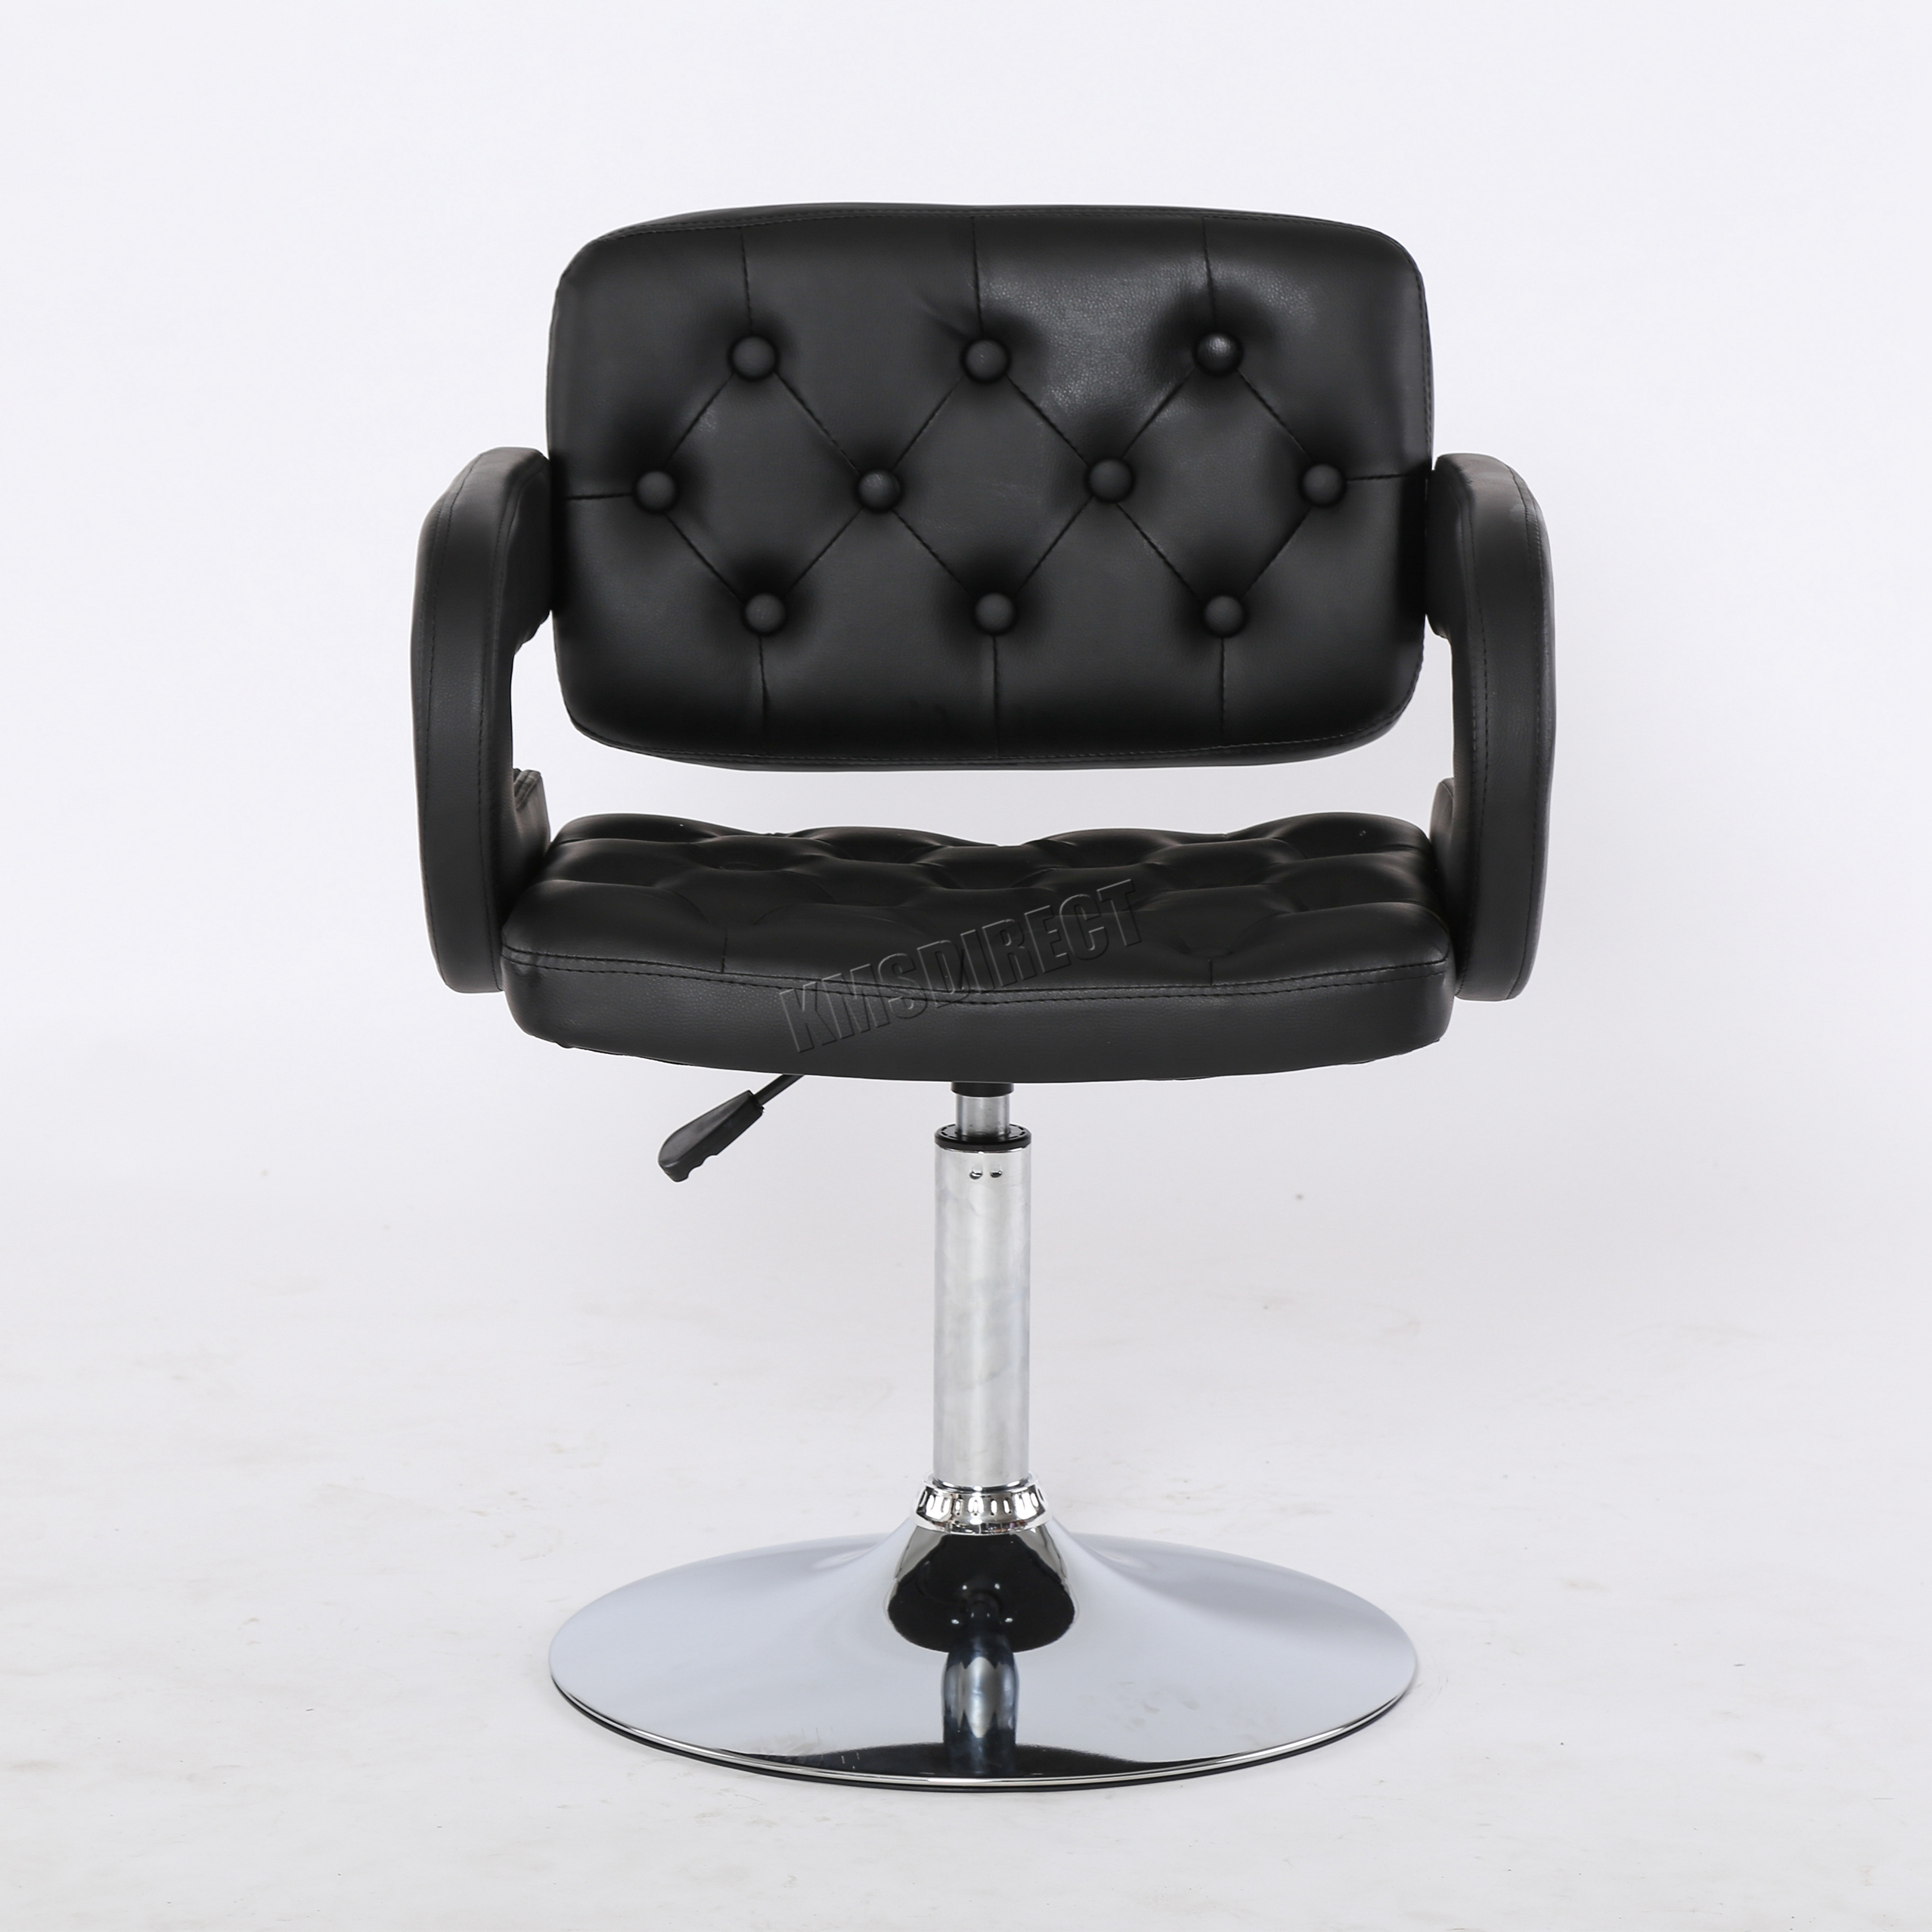 beauty salon chairs images electric blanket for office chair foxhunter barber hairdressing hair cut